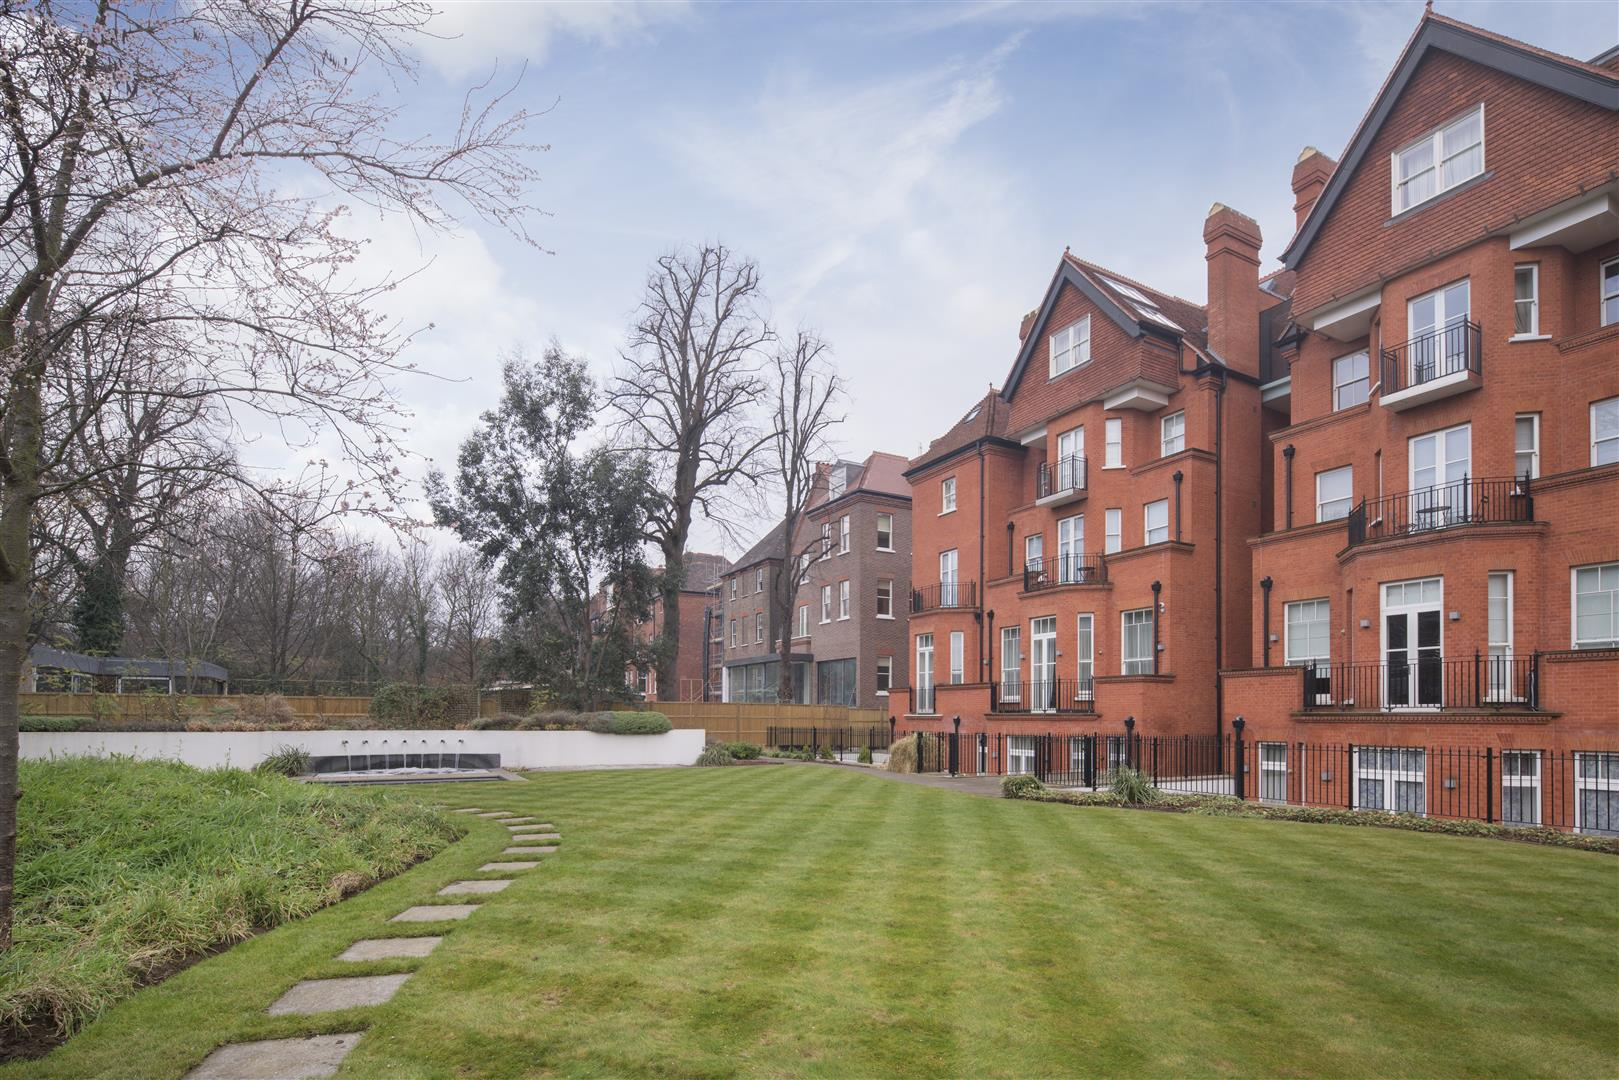 3 Bedrooms Flat for sale in de Lszl House, Fitzjohn's Avenue, Hampstead, NW3